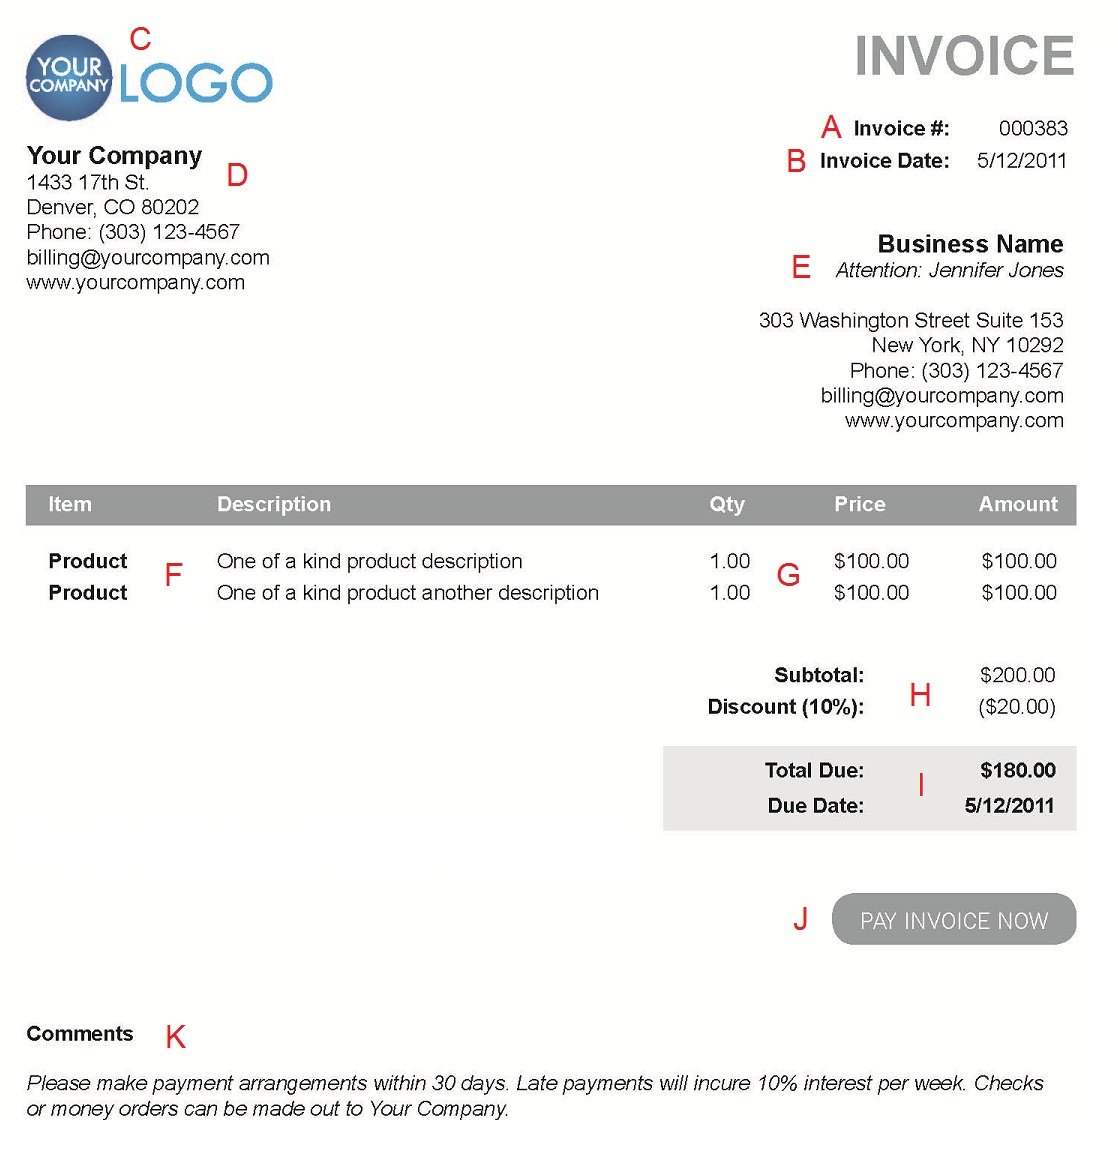 Coolmathgamesus  Nice The  Different Sections Of An Electronic Payment Invoice With Inspiring A  With Adorable Manage Receipts App Also Total Receipts In Addition Paypal Non Receipt Dispute And Palm Beach County Business Tax Receipt As Well As Proforma Receipt Template Additionally Lost My Usps Receipt Tracking Number From Paysimplecom With Coolmathgamesus  Inspiring The  Different Sections Of An Electronic Payment Invoice With Adorable A  And Nice Manage Receipts App Also Total Receipts In Addition Paypal Non Receipt Dispute From Paysimplecom